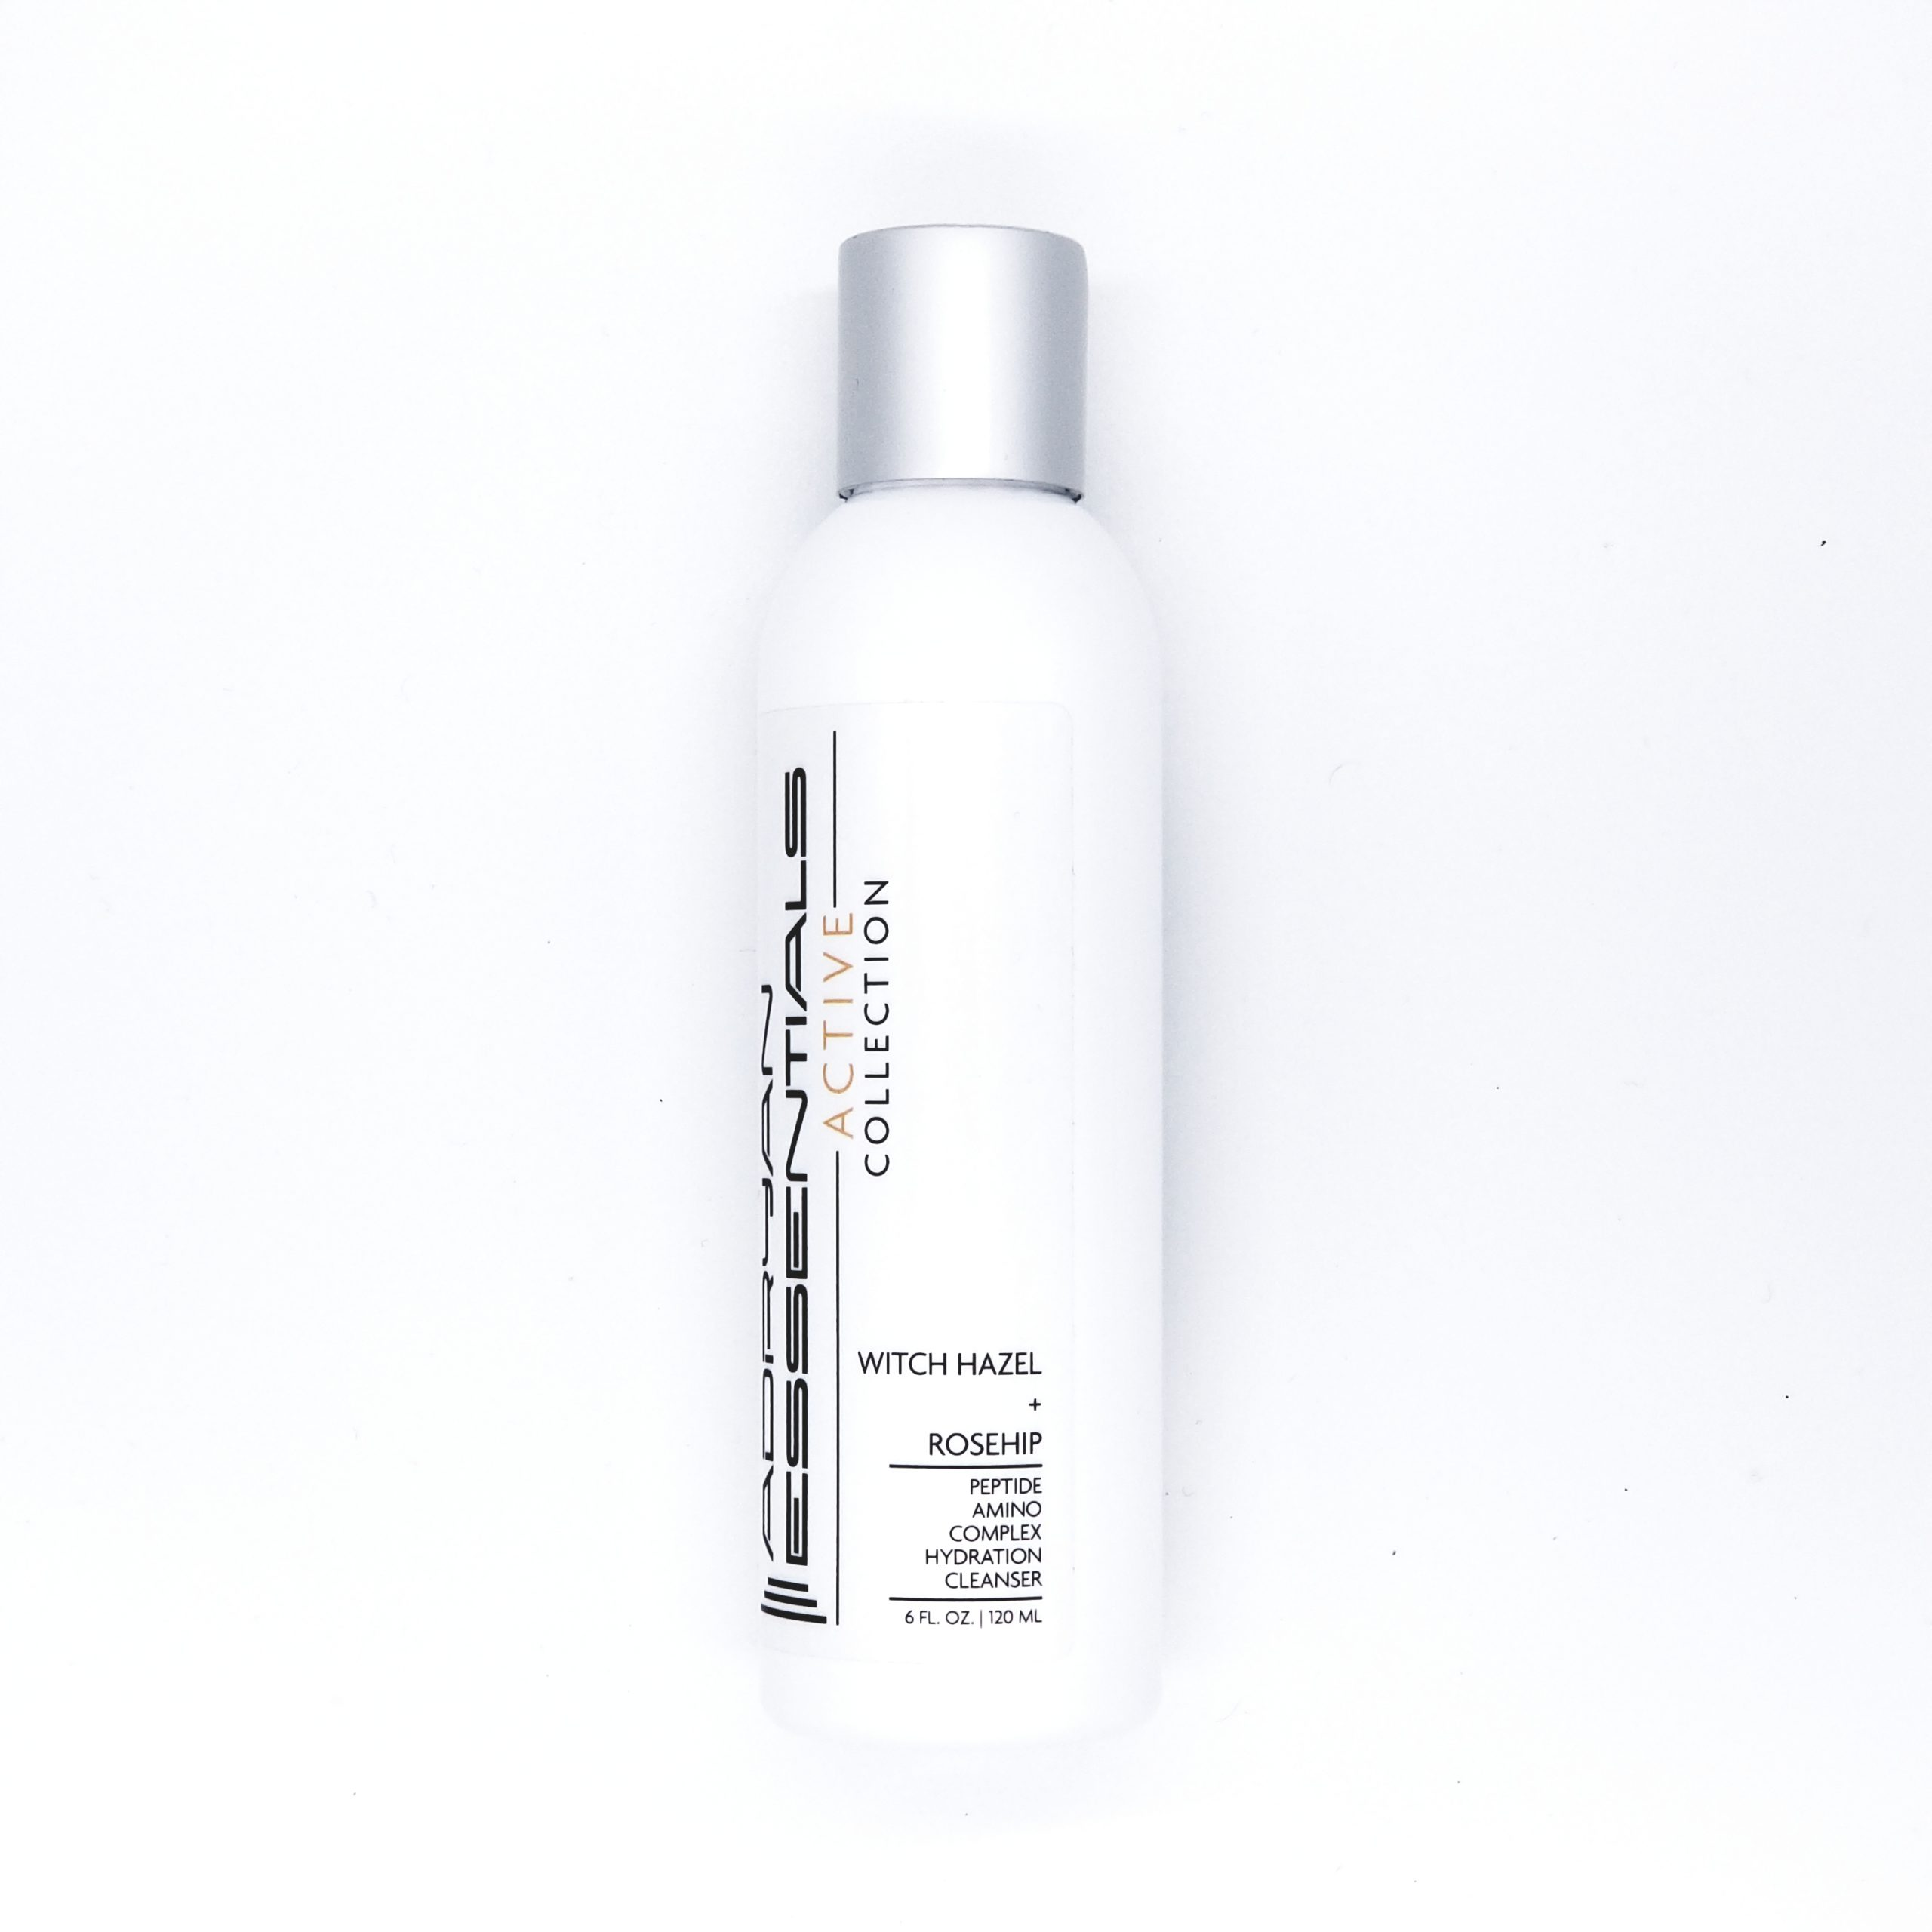 PEPTIDE AMINO COMPLEX HYDRATION CLEANSER